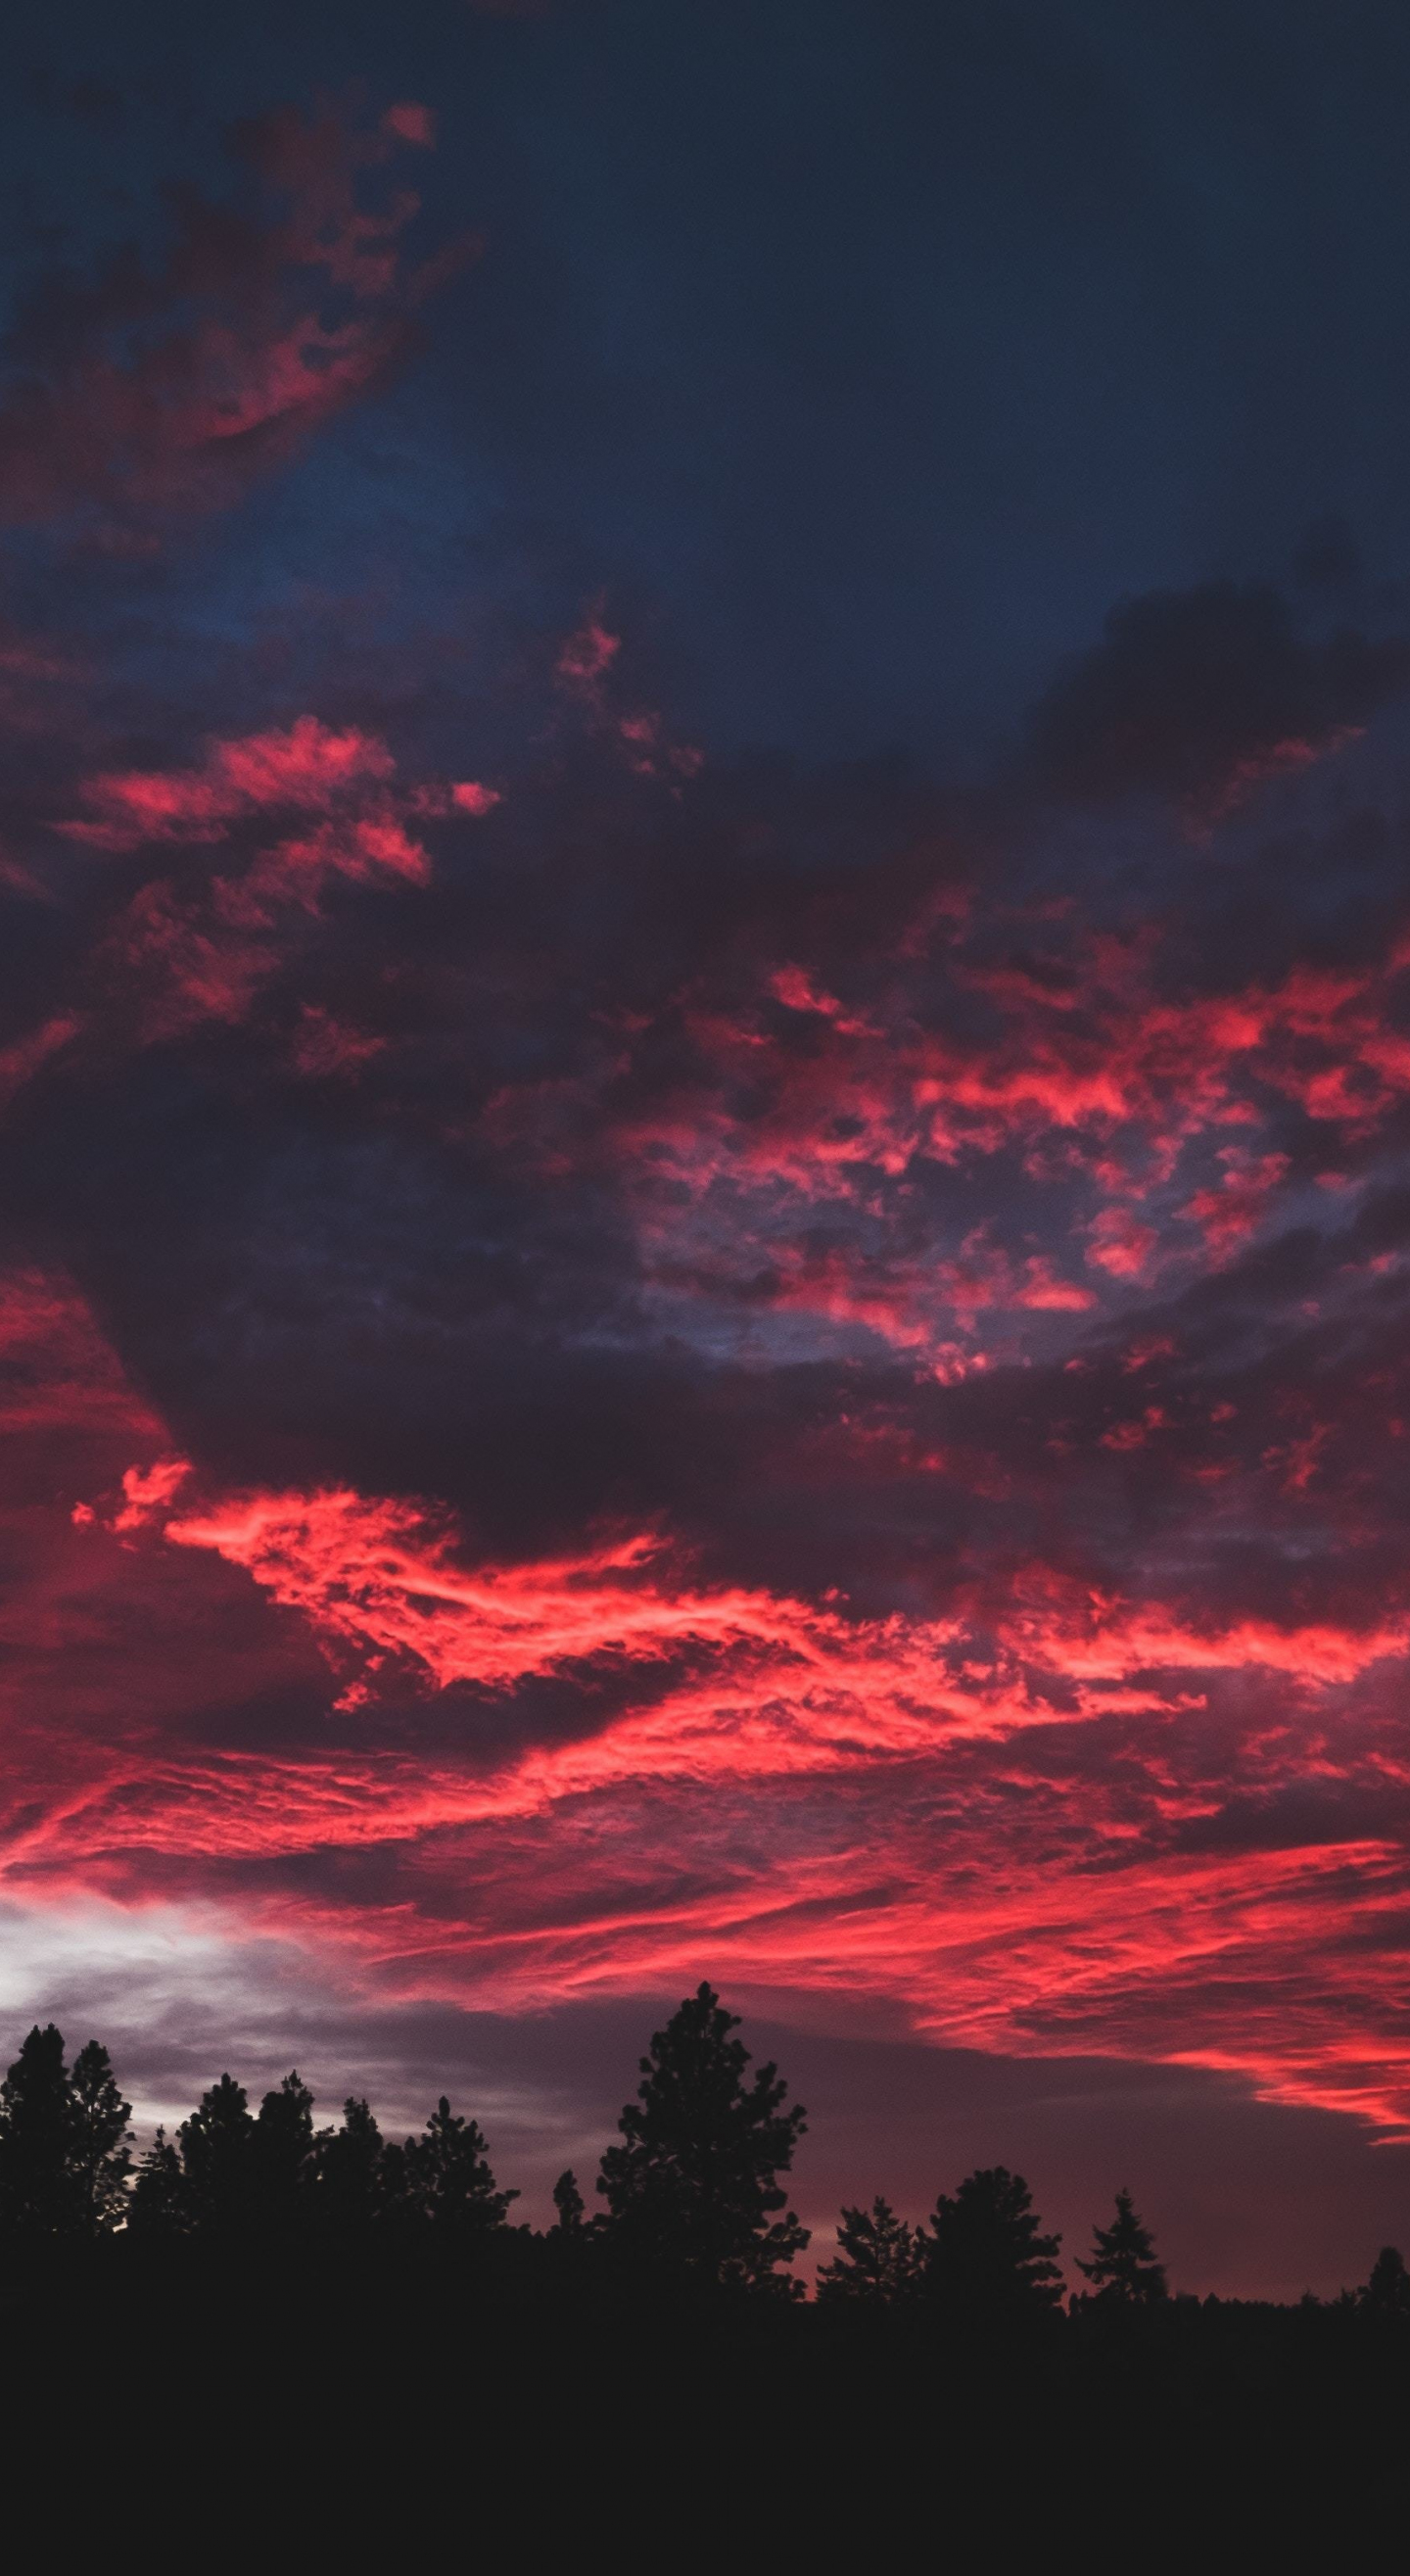 Download 1440x2630 Wallpaper Colorful Clouds Sunset Dark